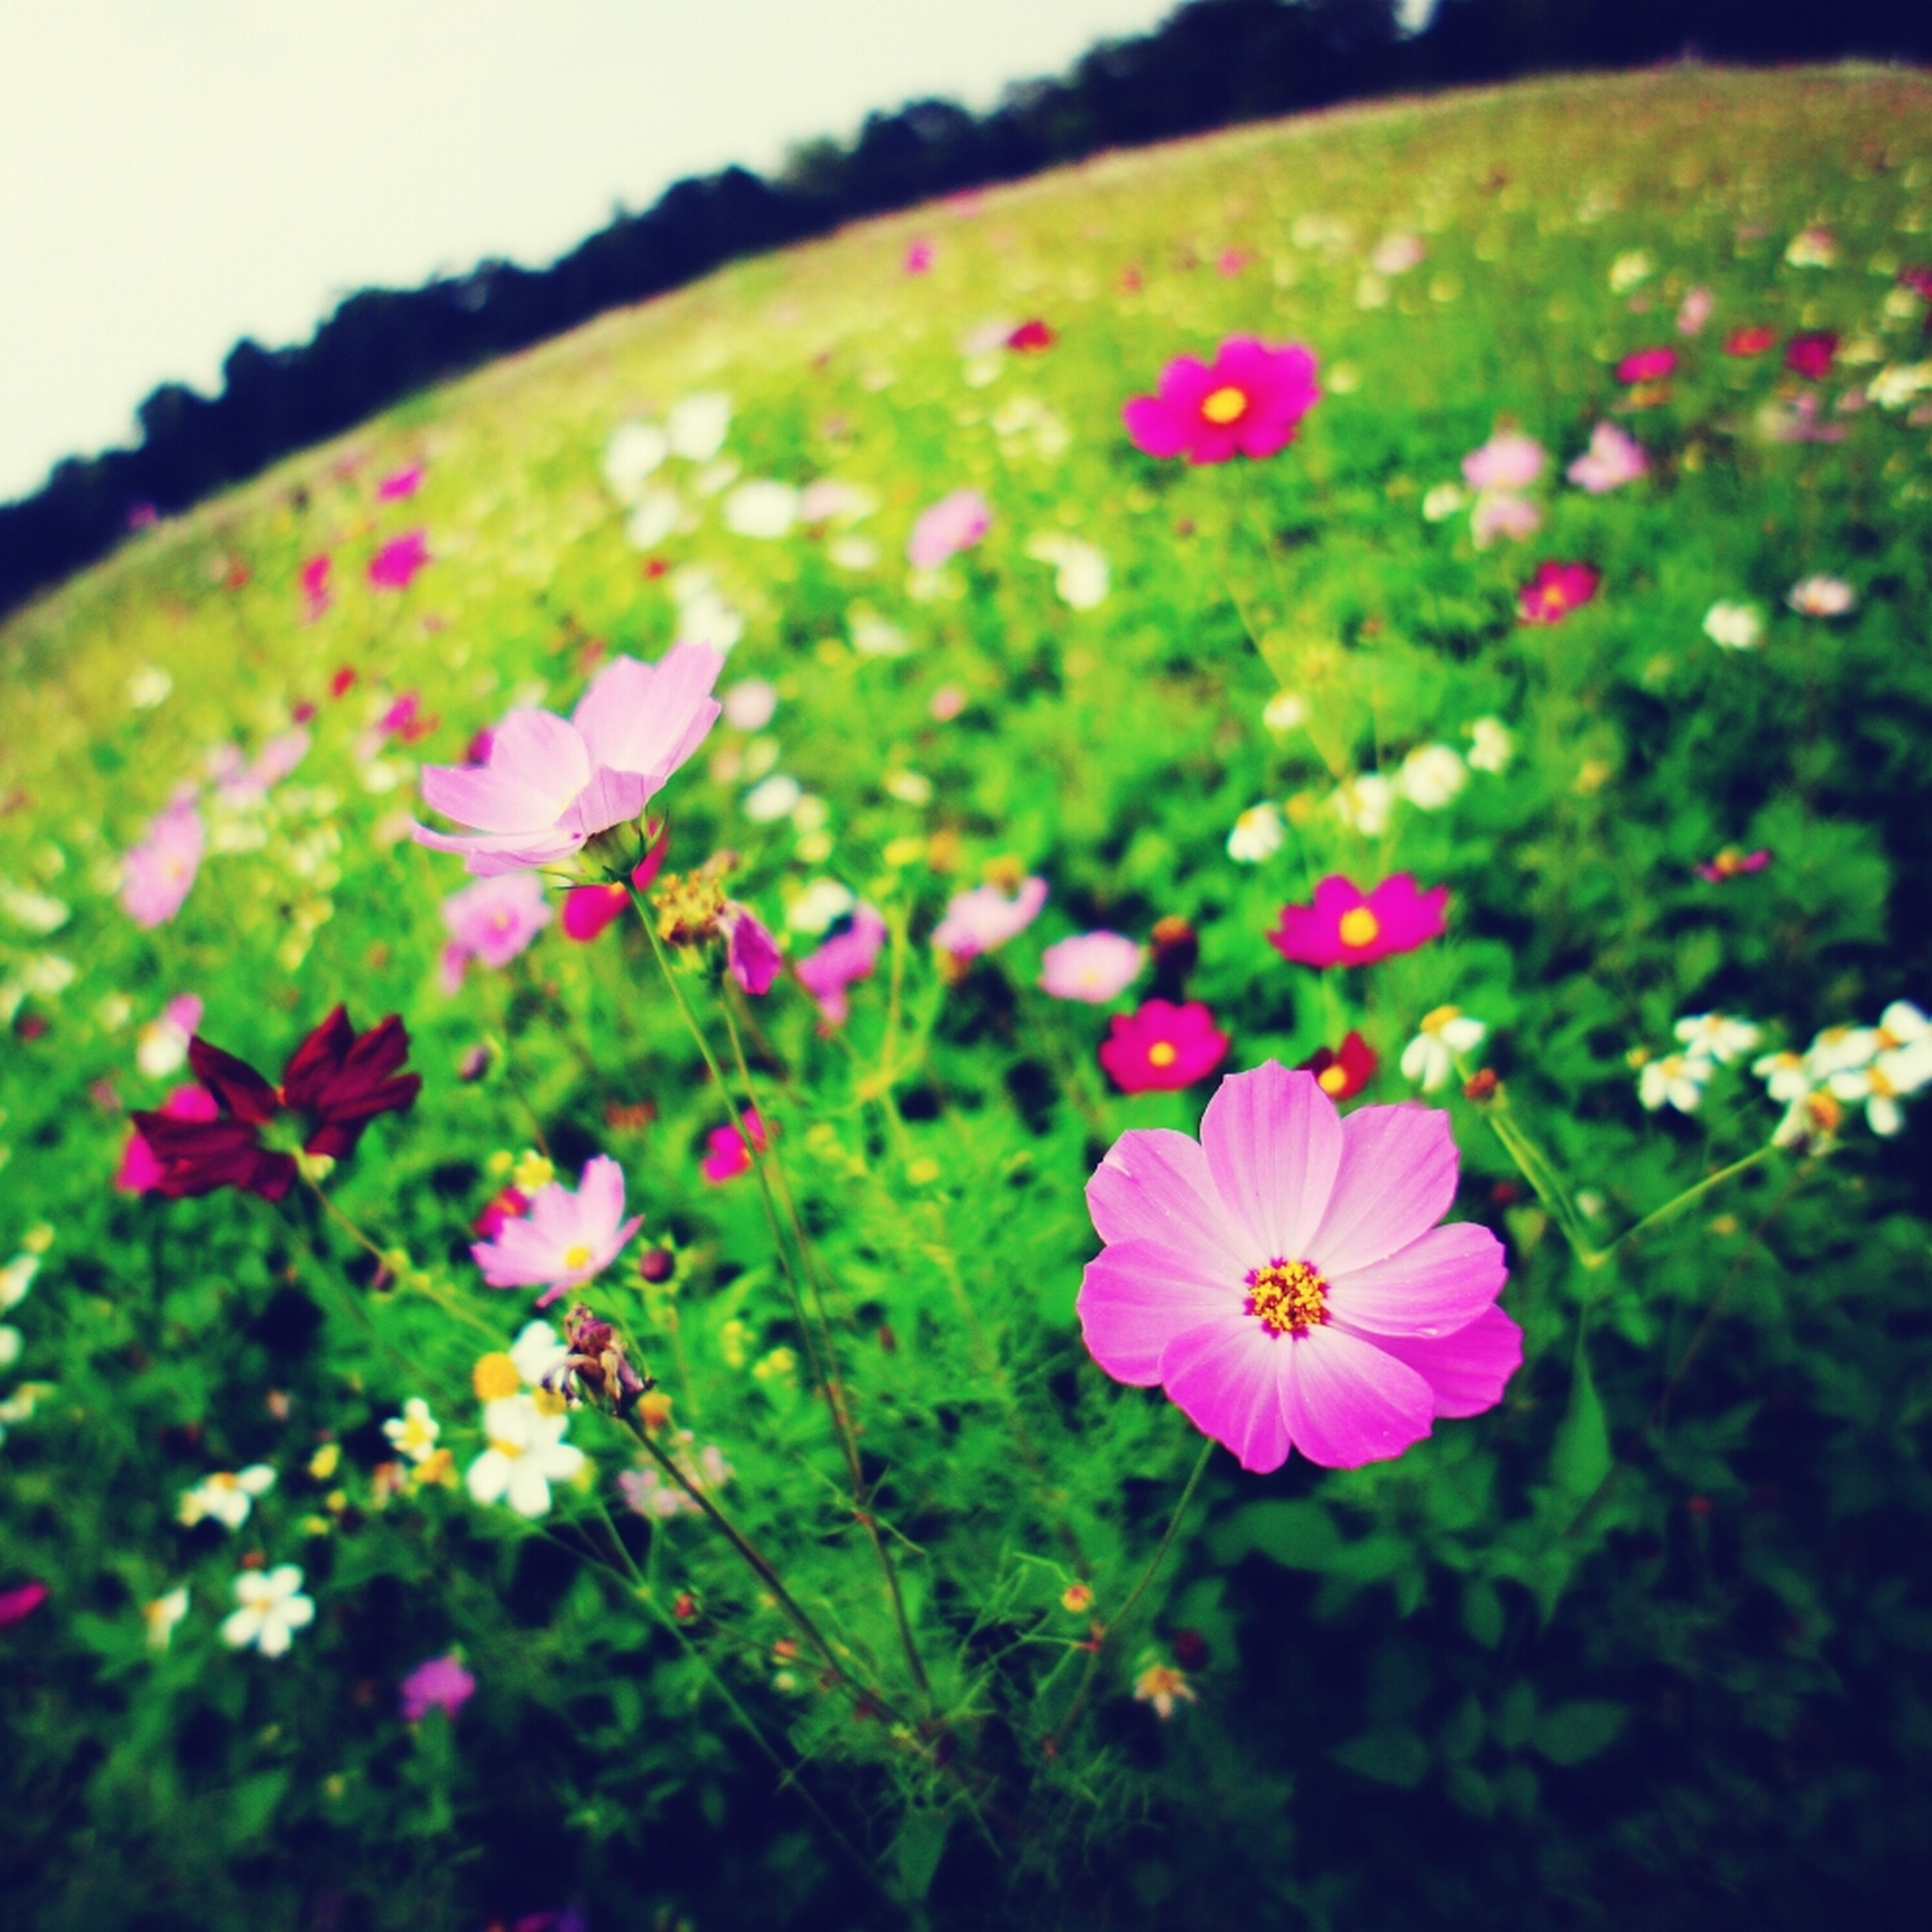 flower, freshness, fragility, petal, growth, pink color, beauty in nature, flower head, blooming, nature, field, plant, focus on foreground, in bloom, close-up, day, blossom, springtime, green color, outdoors